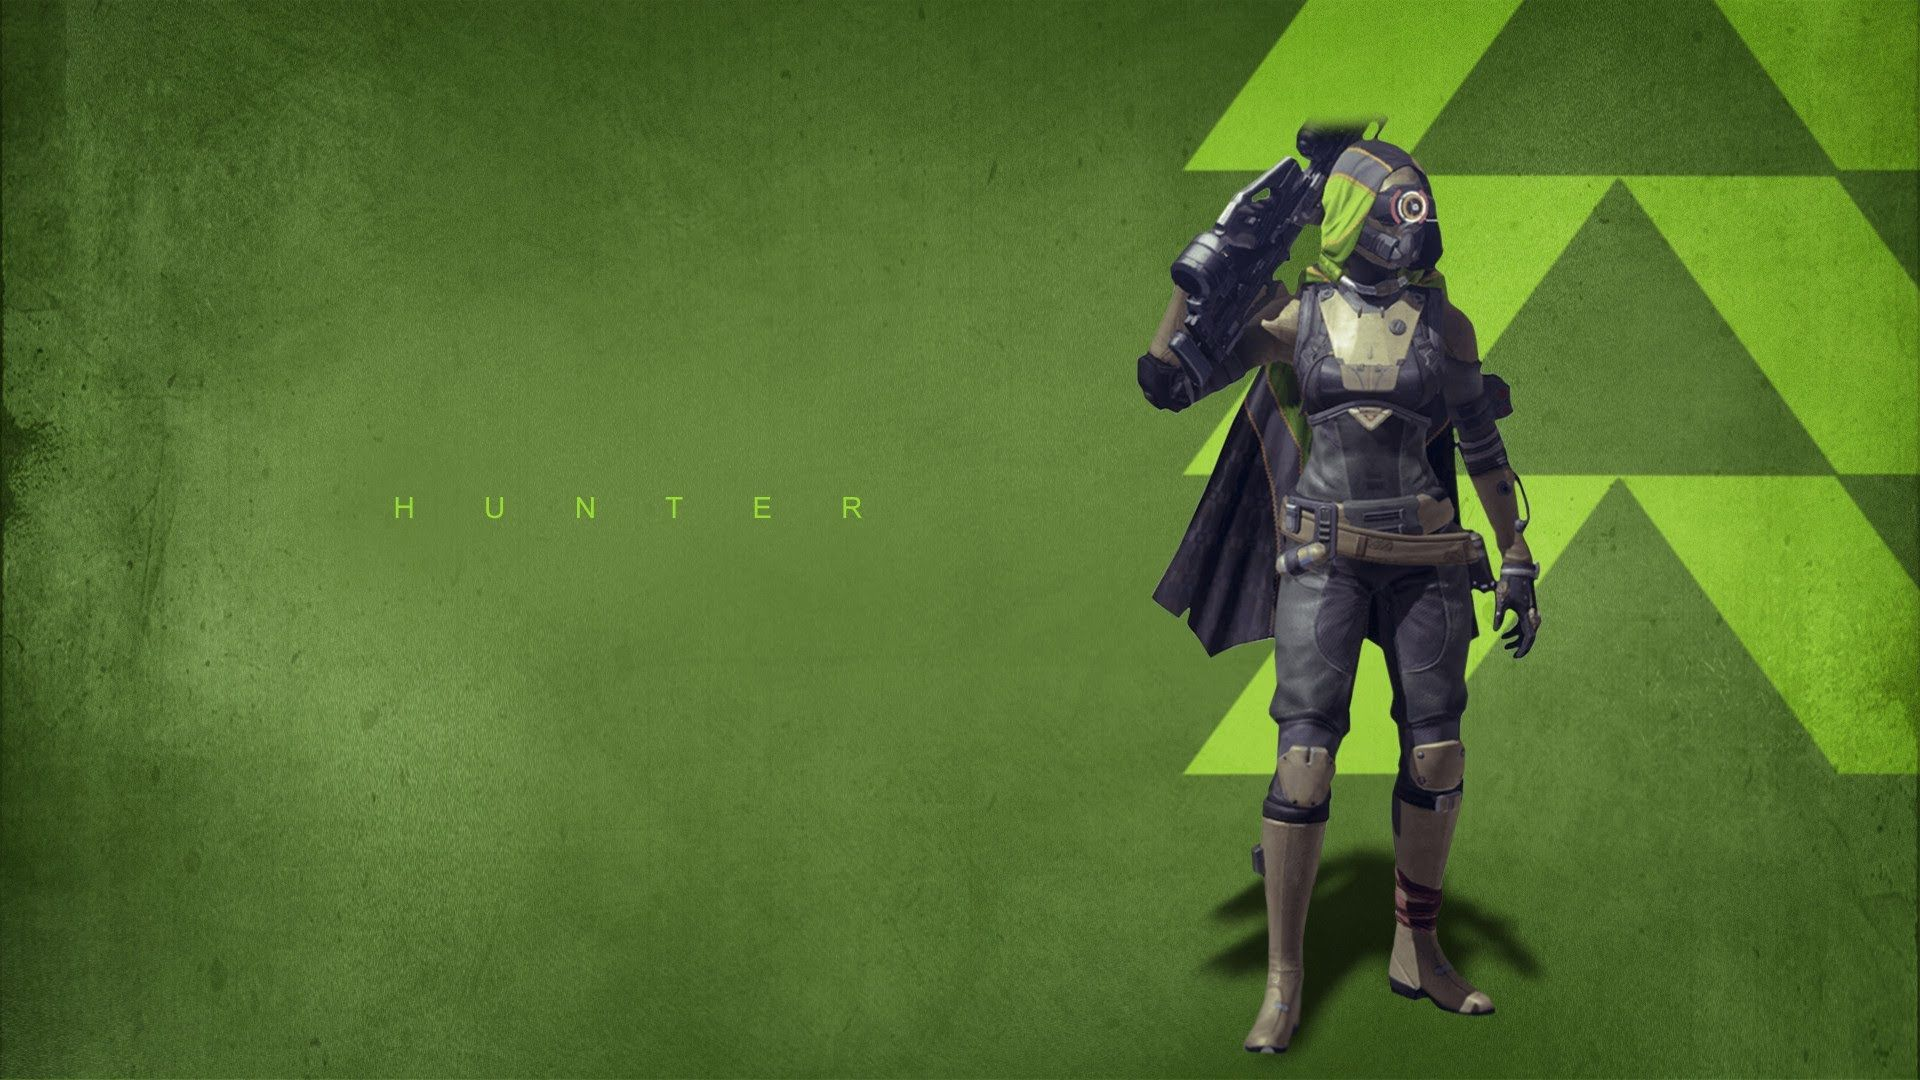 Hunter Top FPS Game 2014 Destiny HD Wallpaper Games